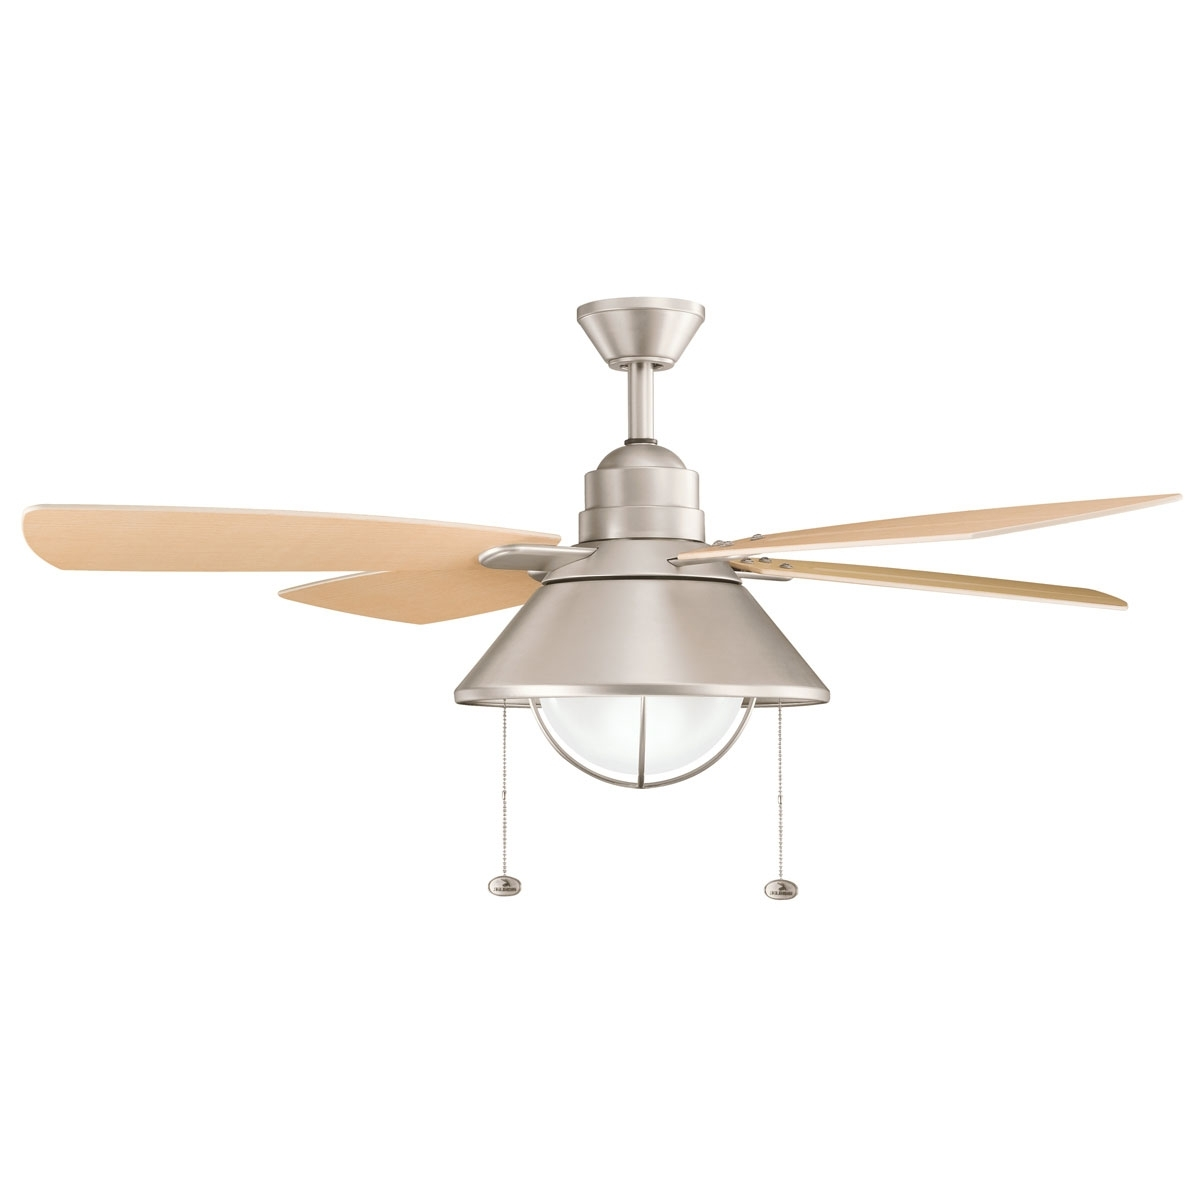 Nautical Outdoor Ceiling Fans Inside Favorite Nautical Ceiling Fans With Lights – Photos House Interior And Fan (Gallery 10 of 20)